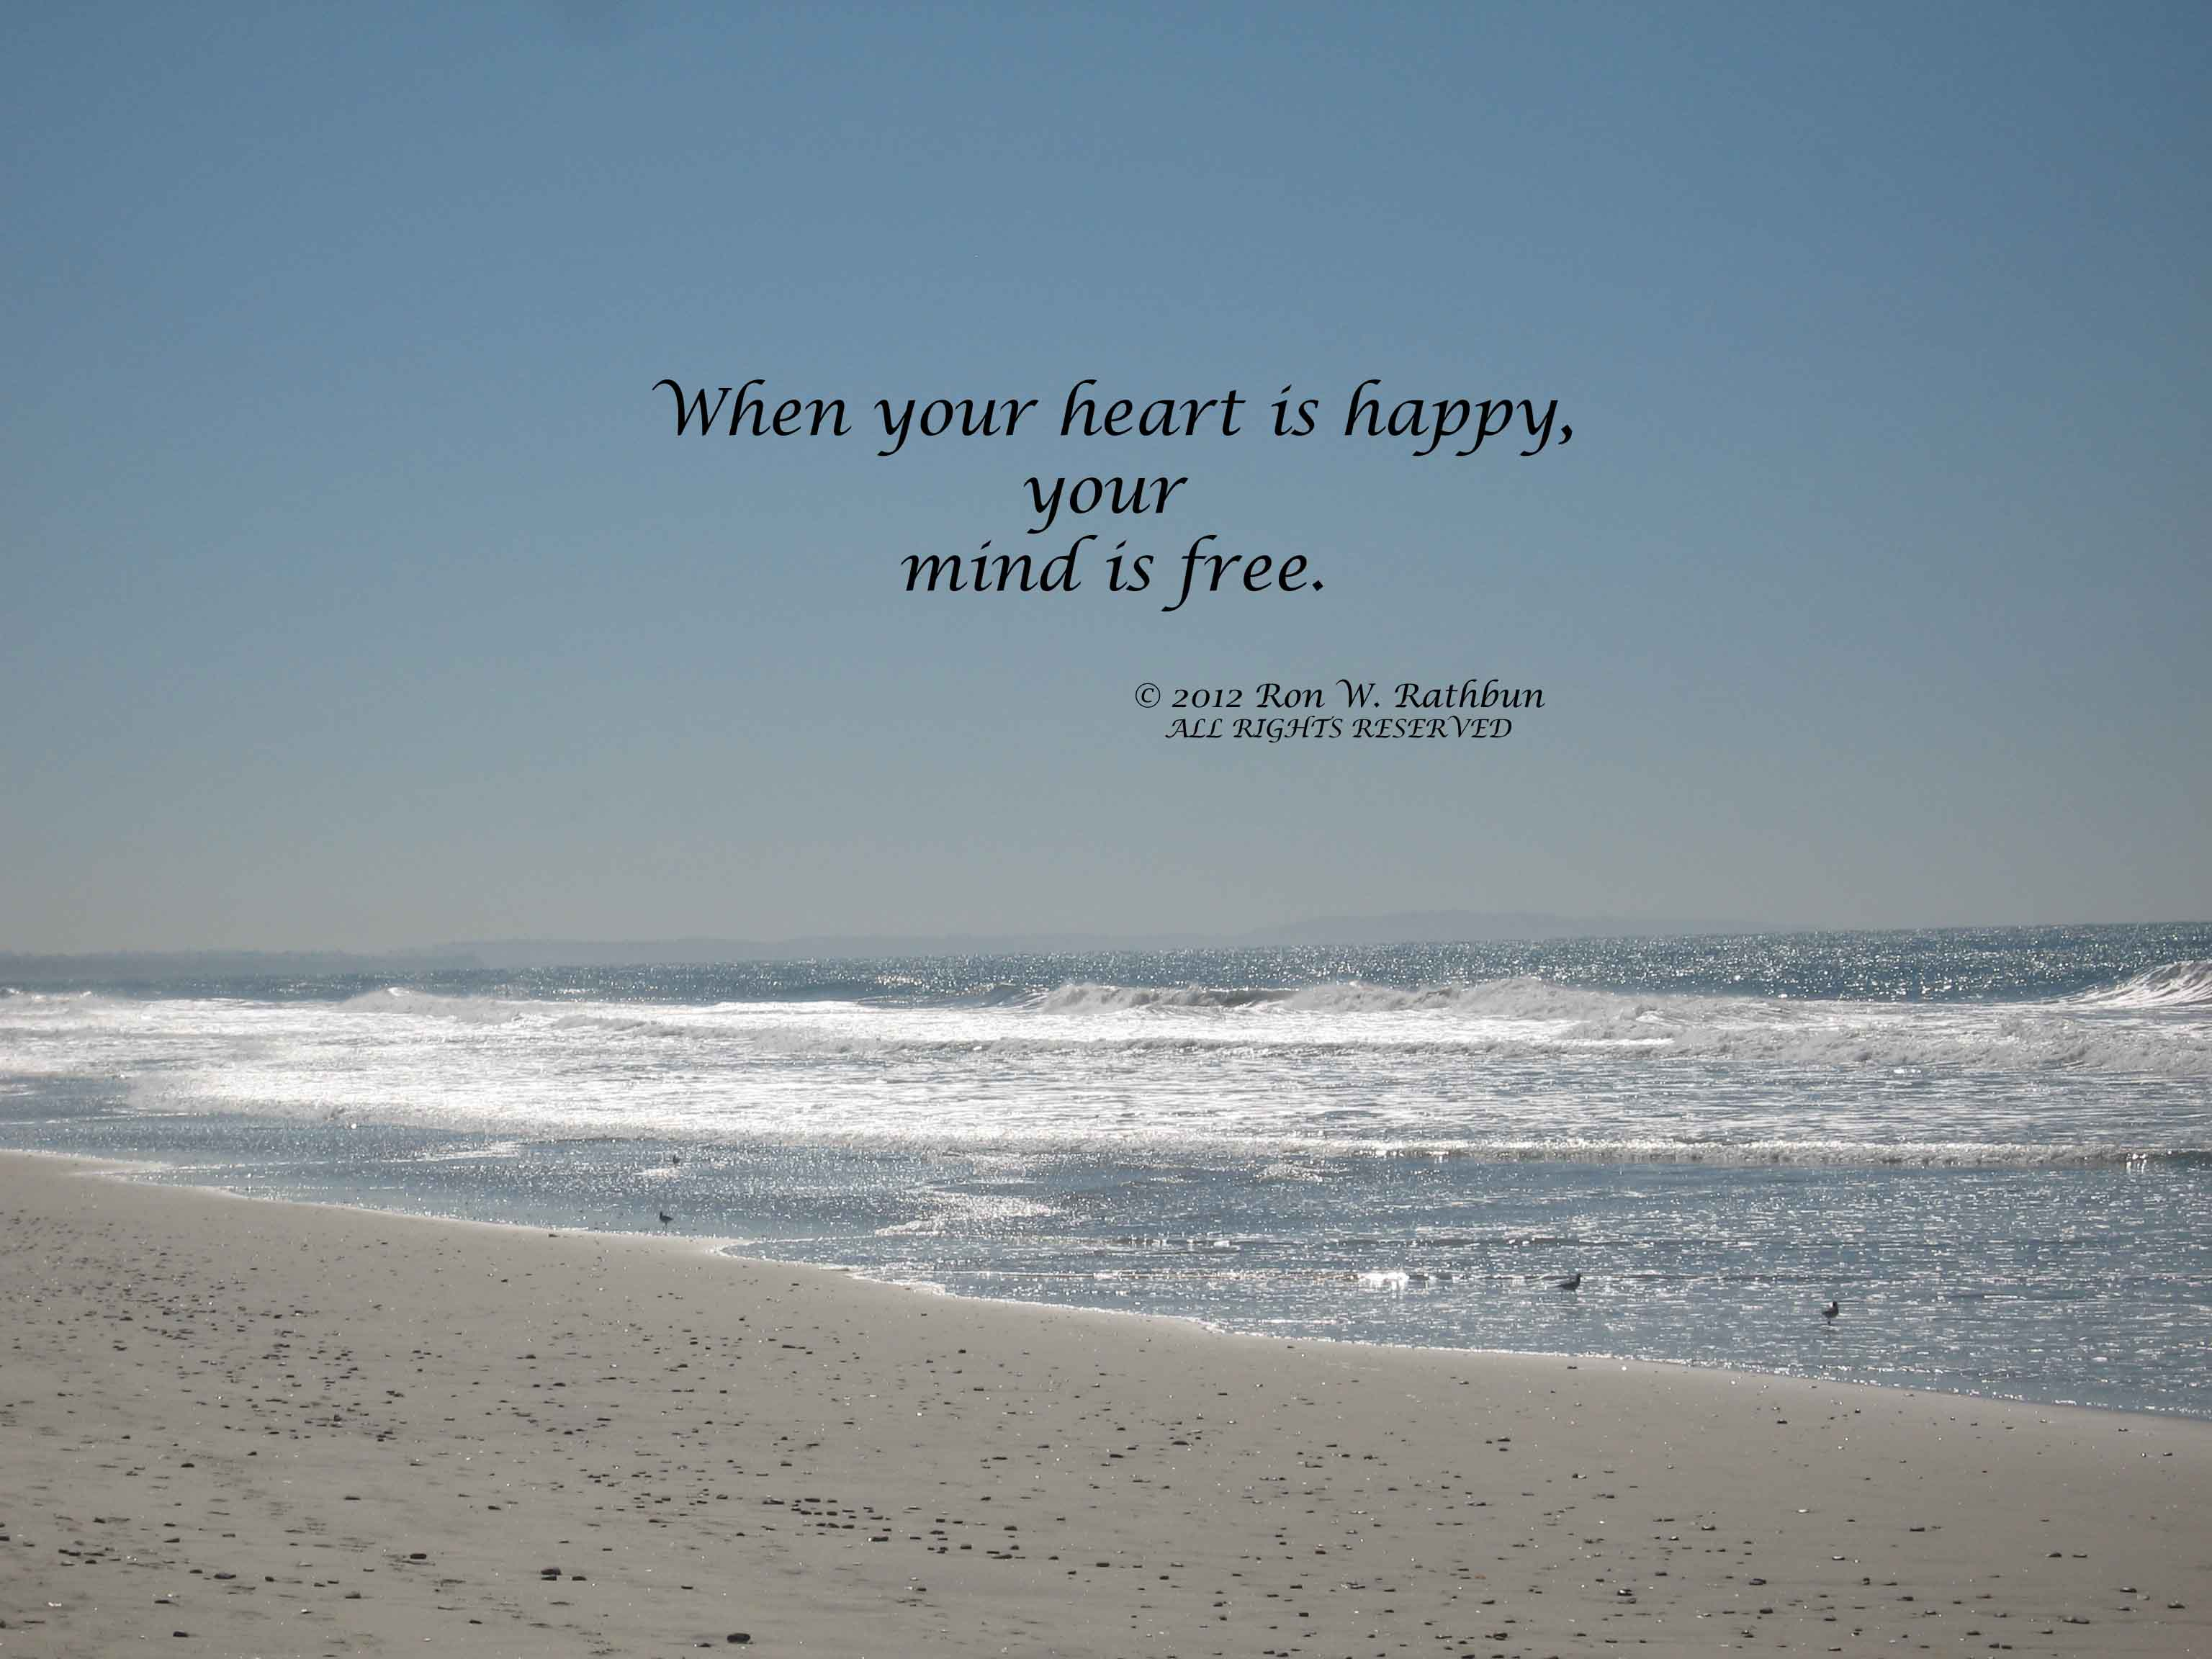 Superior When Your Heart Is Happy Your Mind Is Free. Ron W. Rathbun